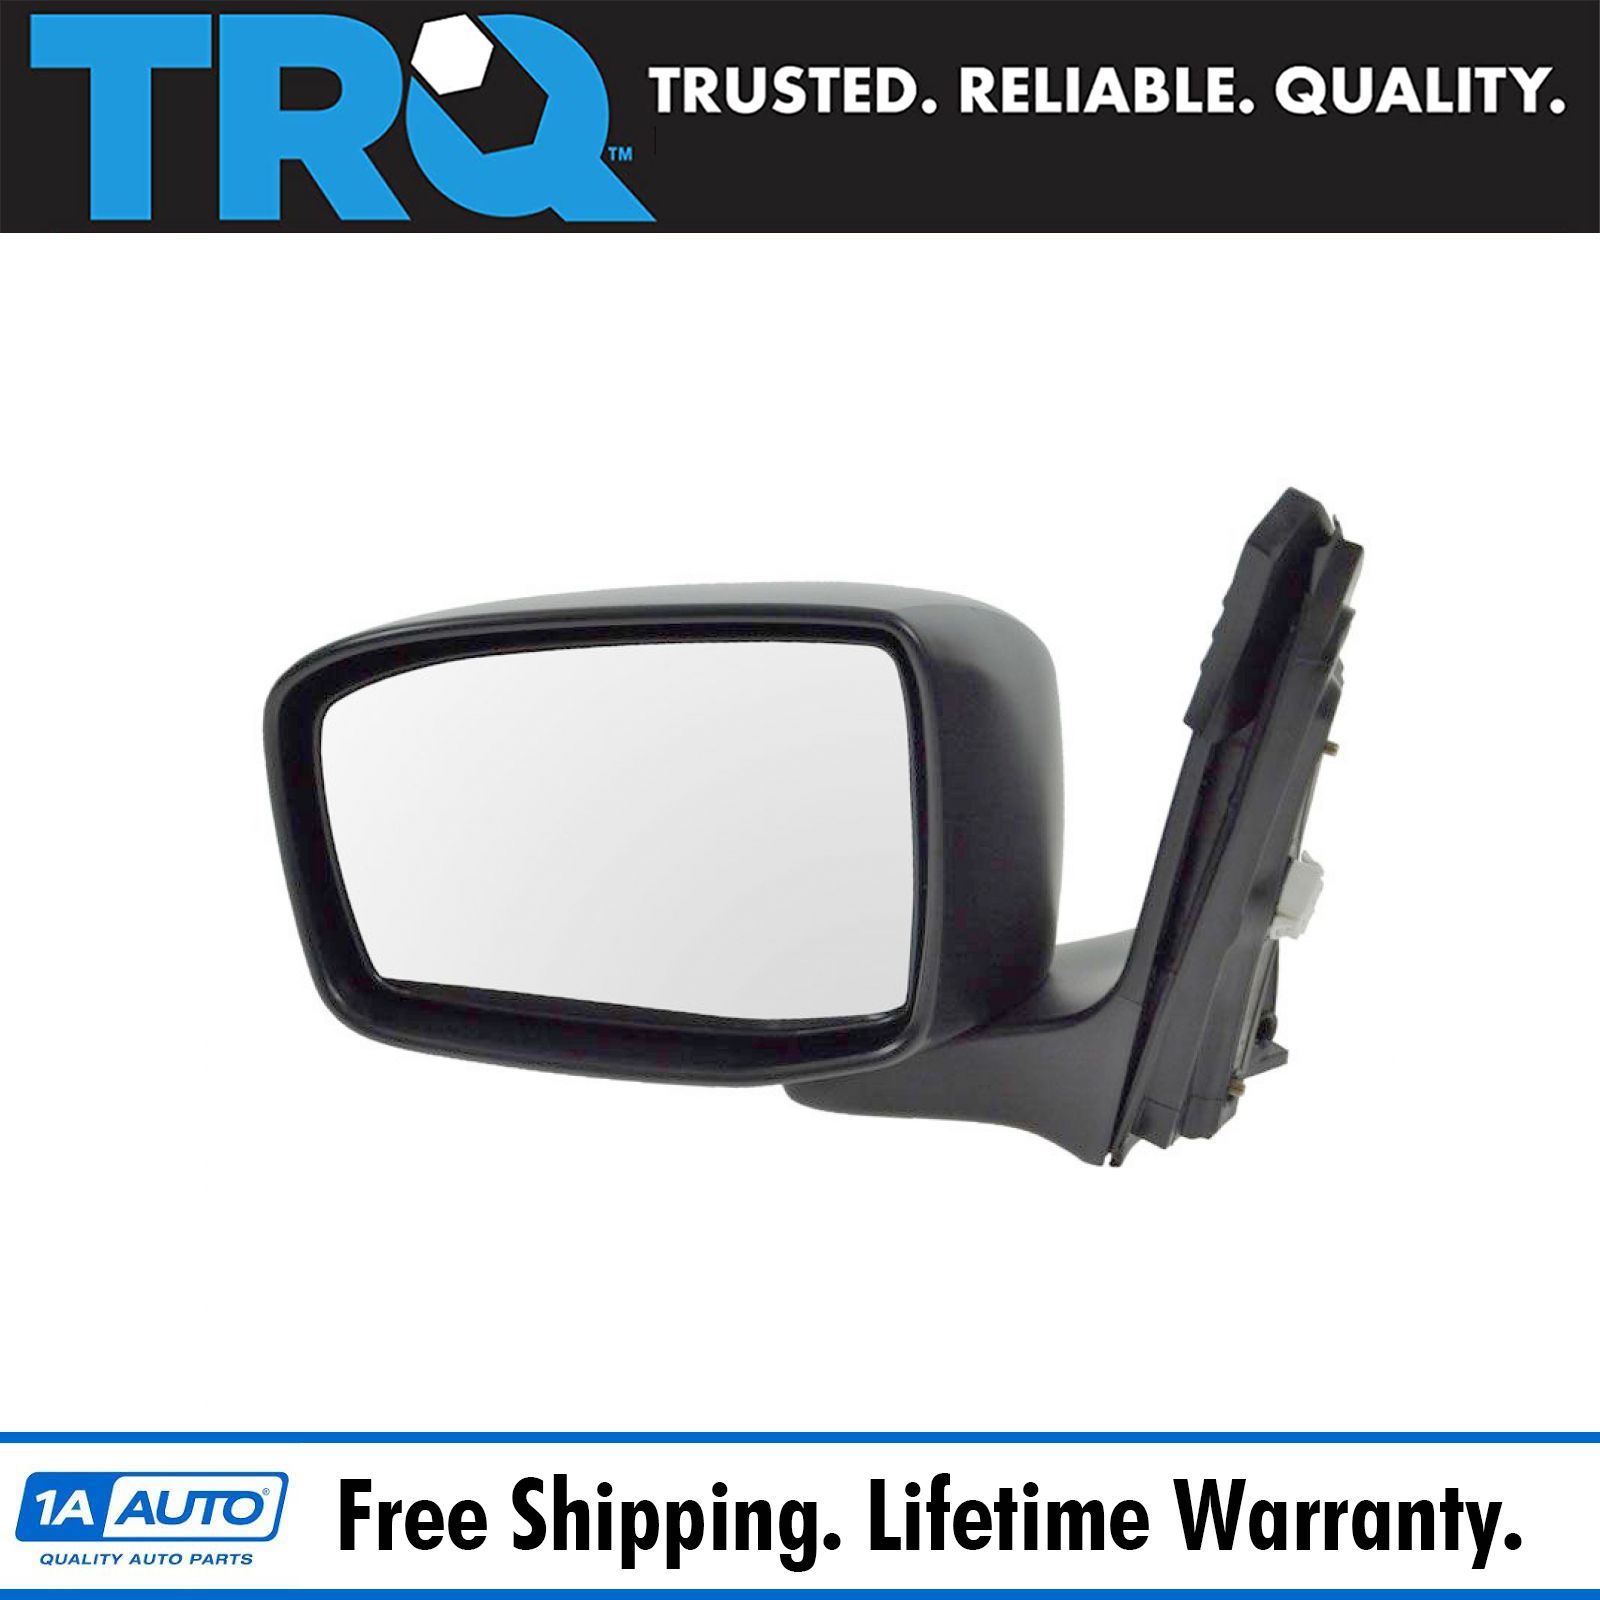 Driver Side Flat View Drop Fit OE Replacement Mirror Glass F40039 Fits Kia